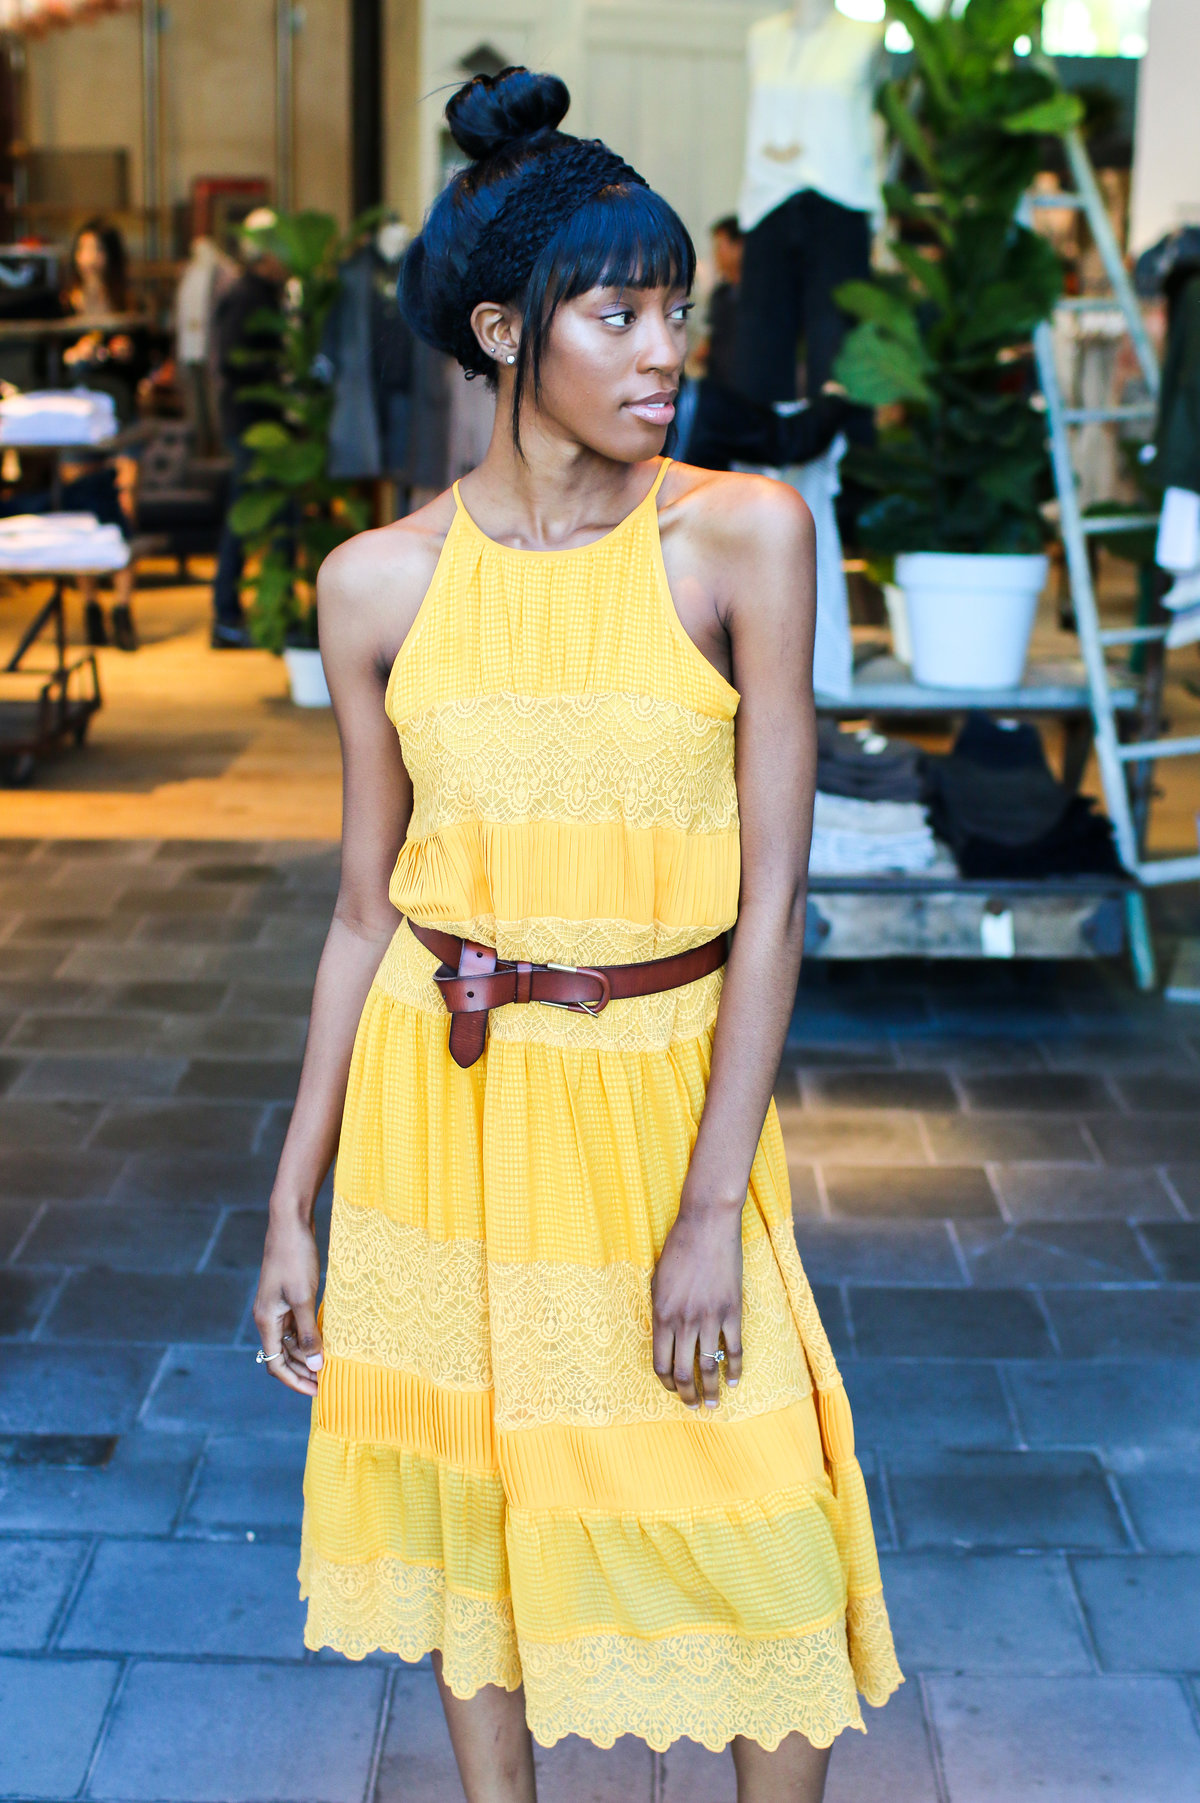 Anthropologie Fashion Show photography